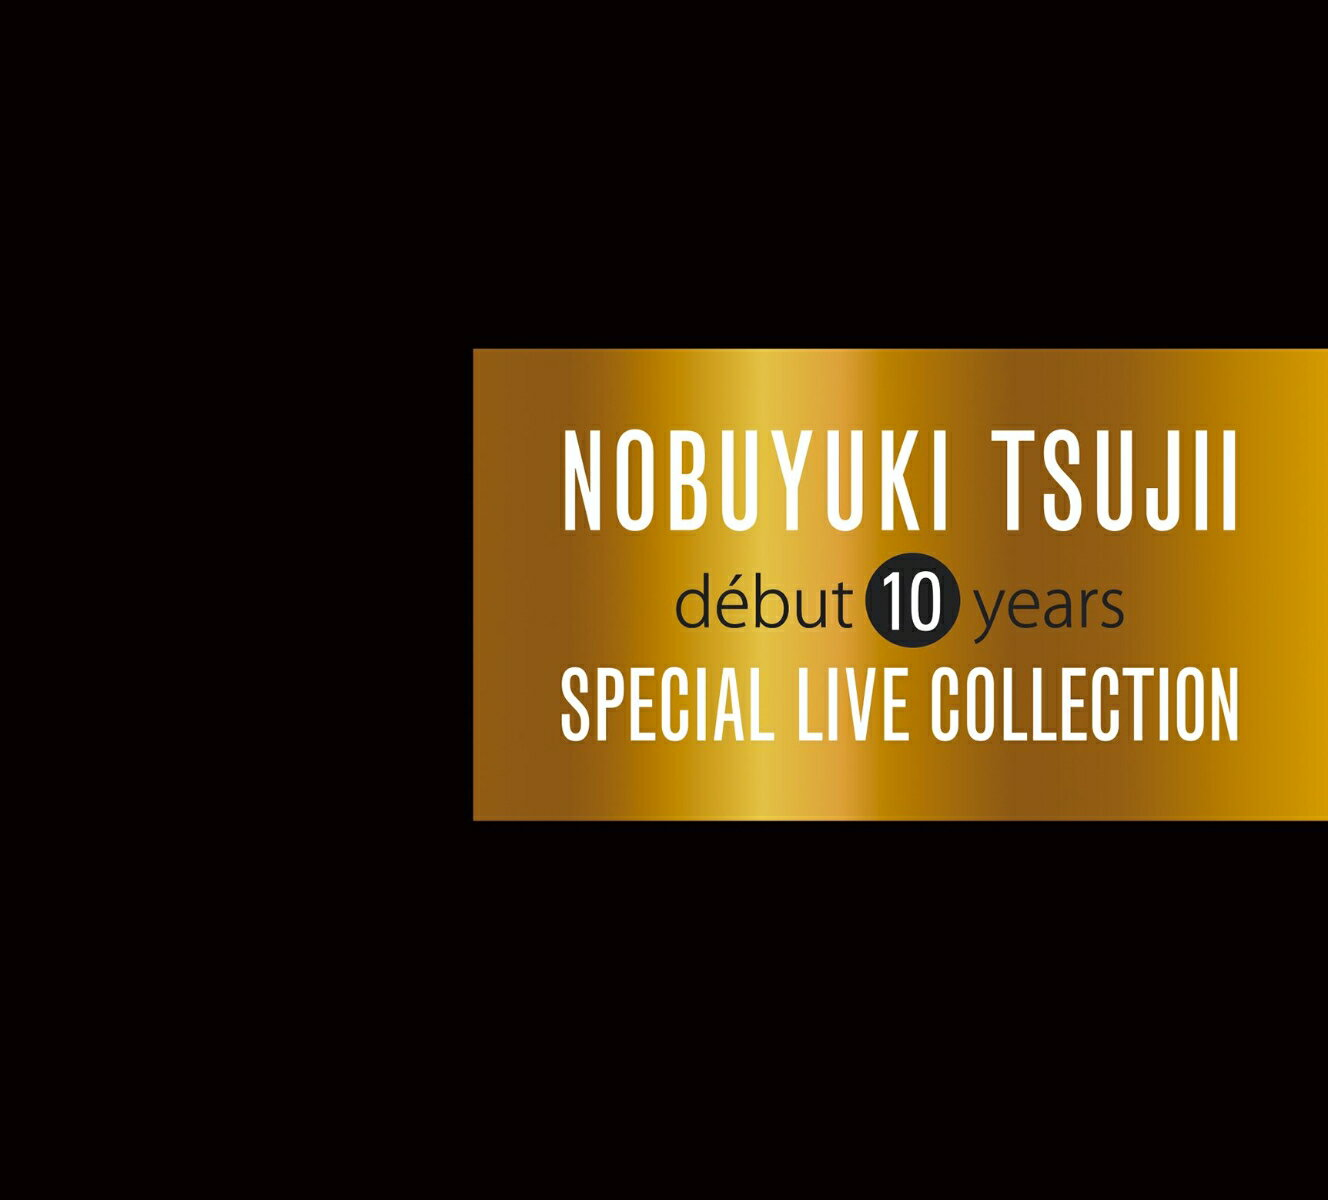 Debut 10 years Special Live Collection画像